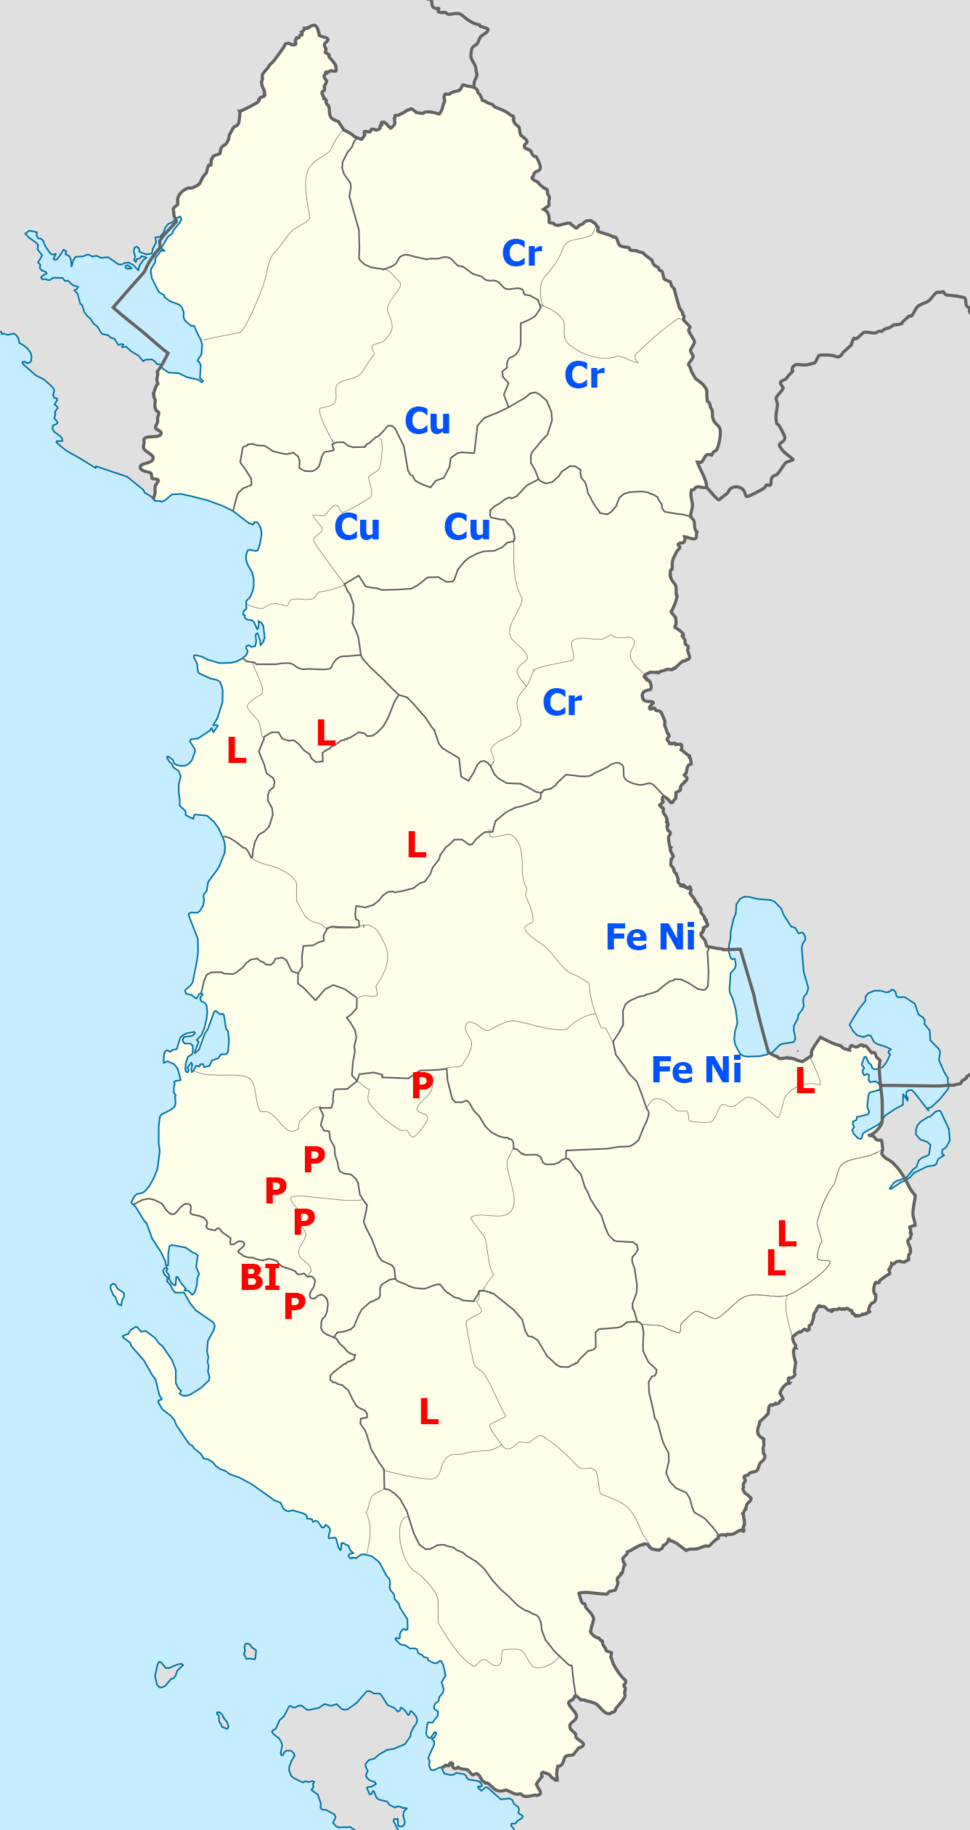 Natural resources of Albania